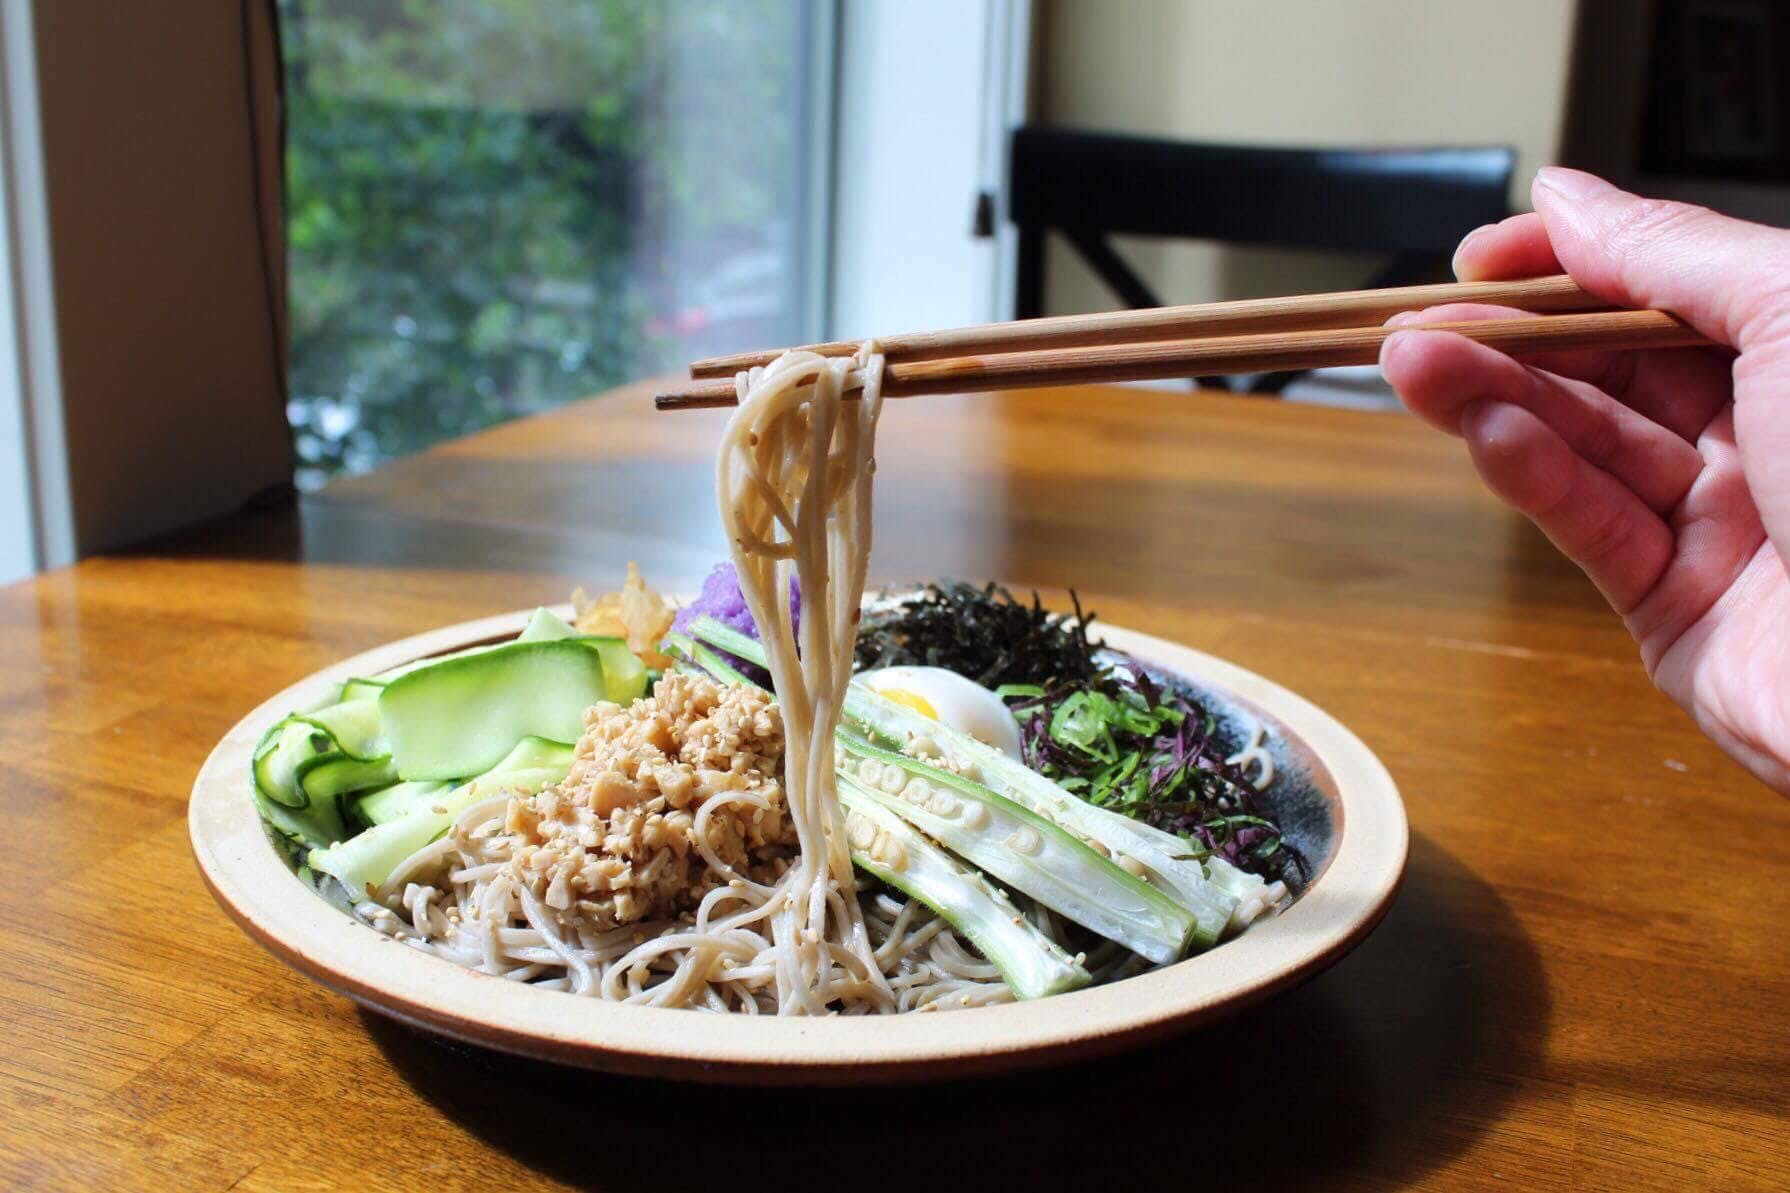 Chopsticks pulling buckwheat soba noodles from a plate of green vegetables.